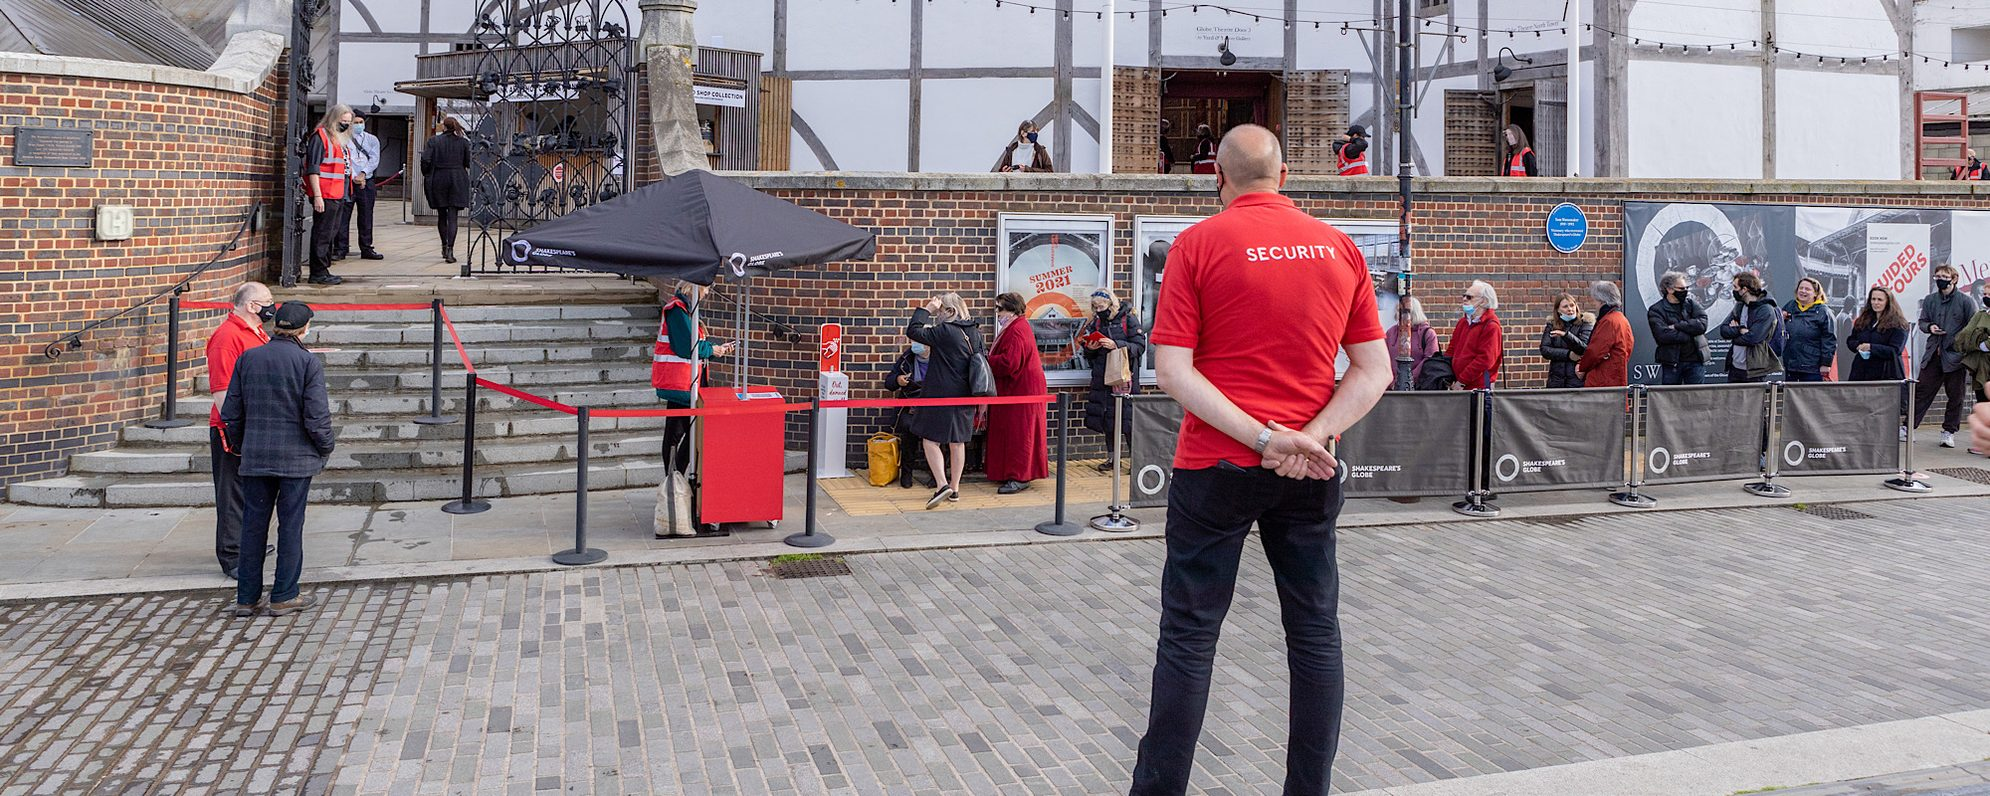 A person with a red shirt that has the words 'security' written on the back of it stands in front of an outdoor white theatre